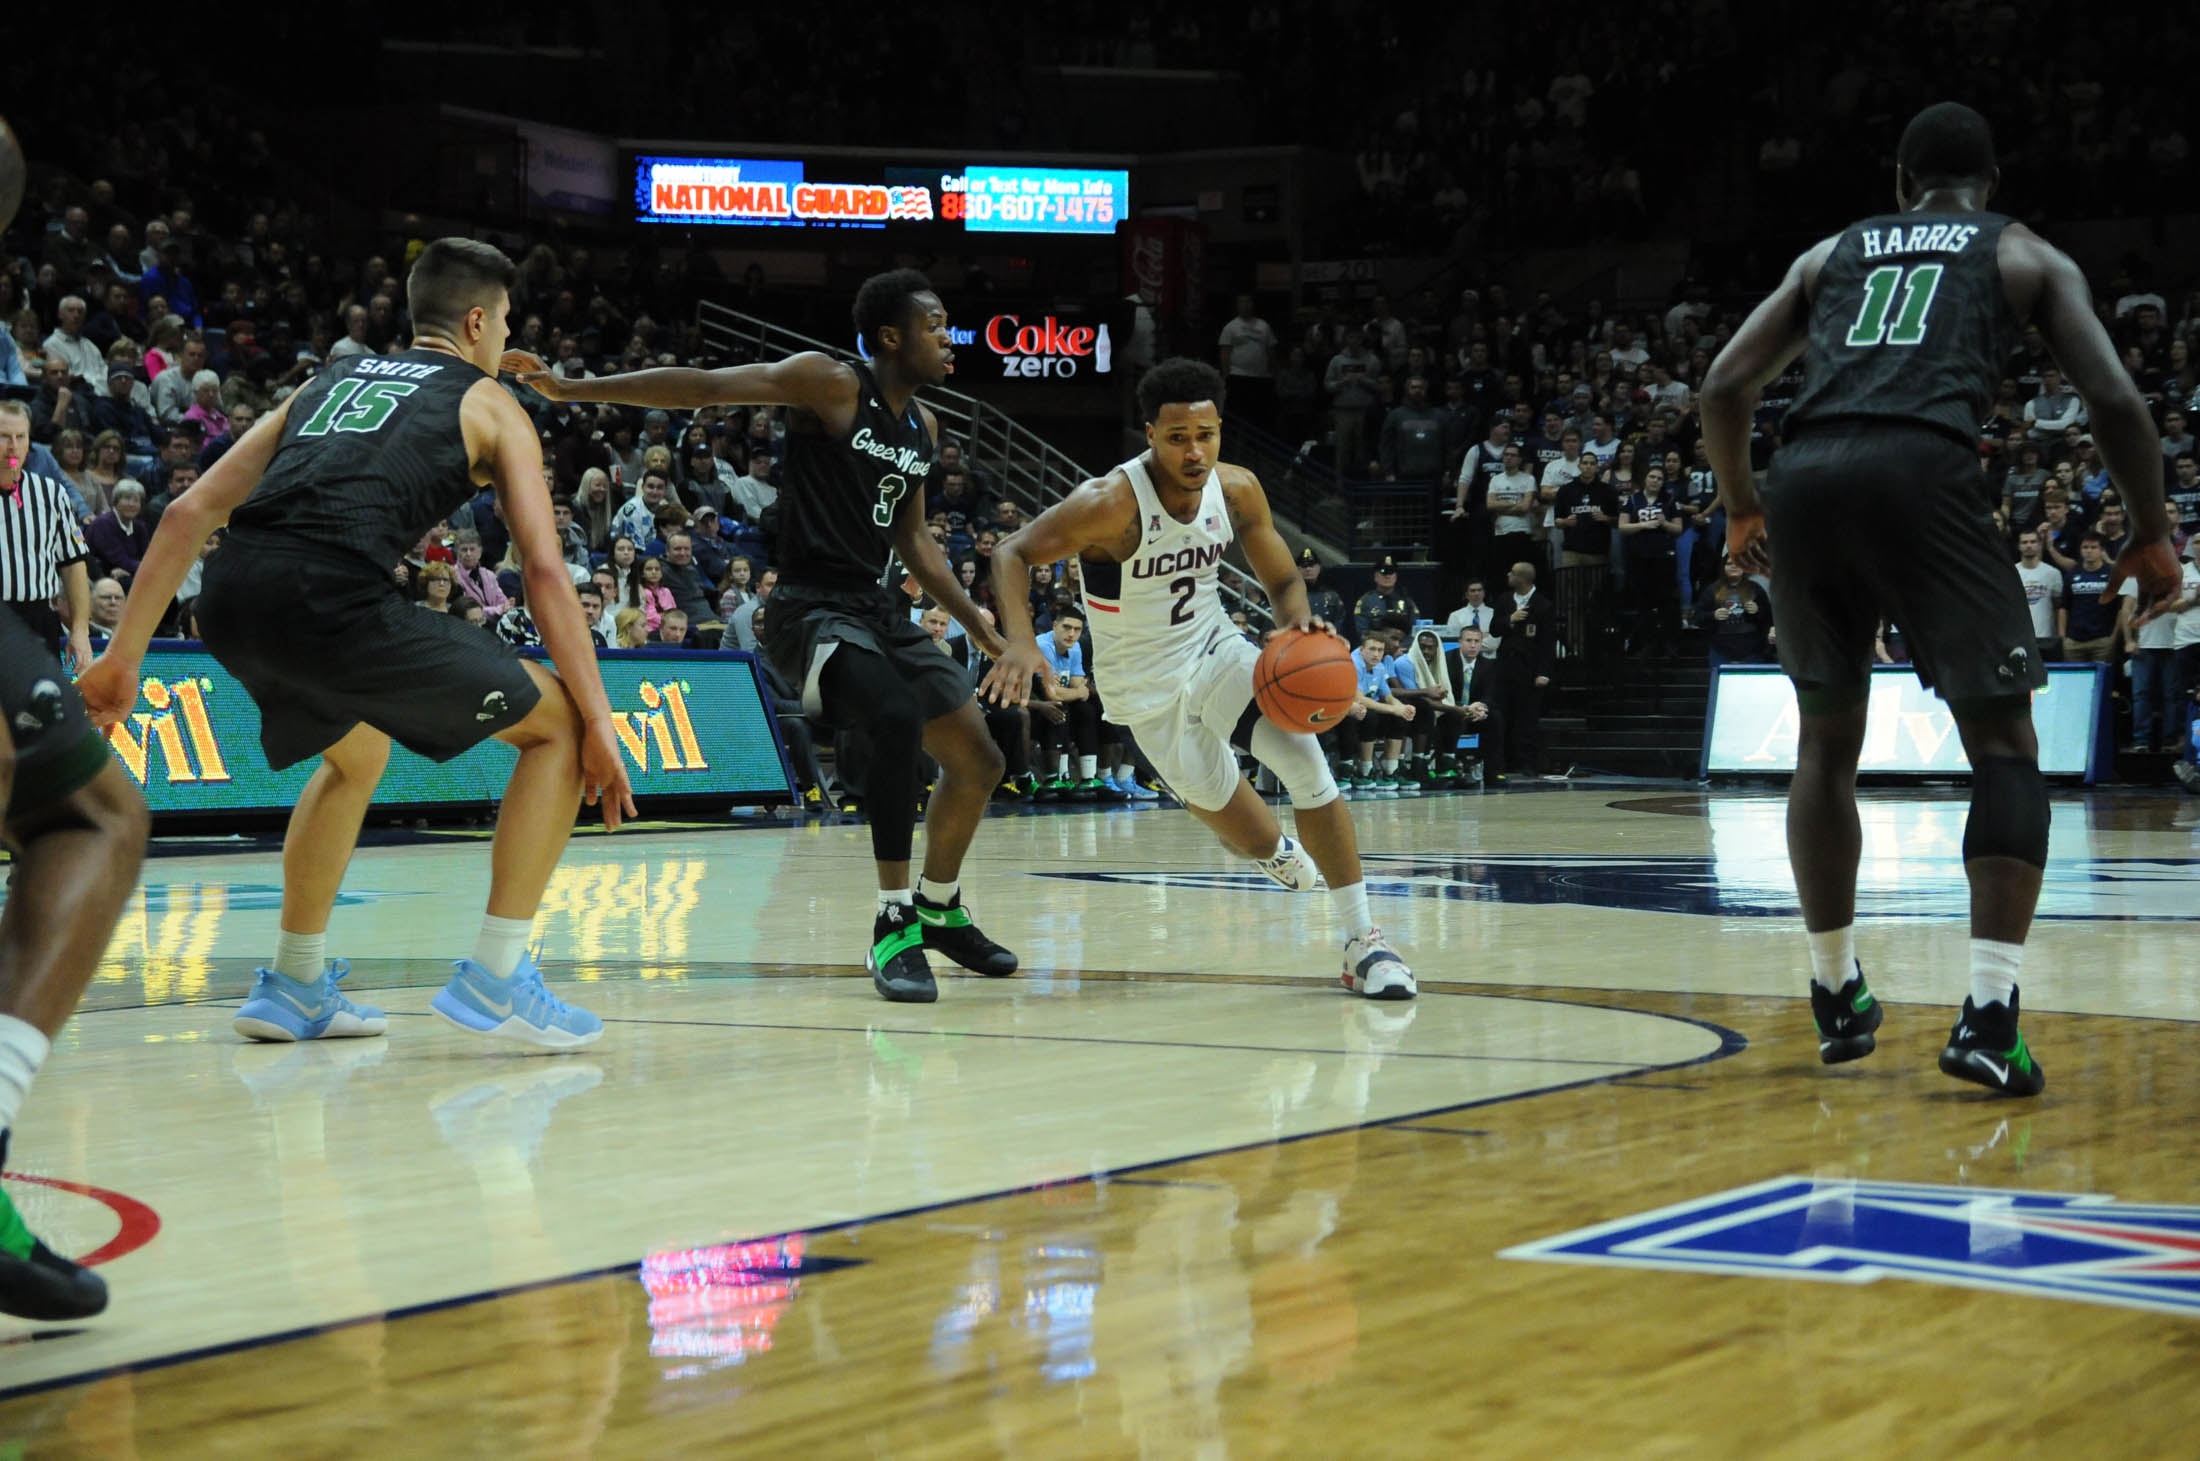 Sophomore guard Jalen Adams avoids a Tulane defender during the Huskies 78-68 victory over the Green Wave Saturday. Jan. 28, 2016 in Gampel Pavilion. (Olivia Stenger/The Daily Campus)